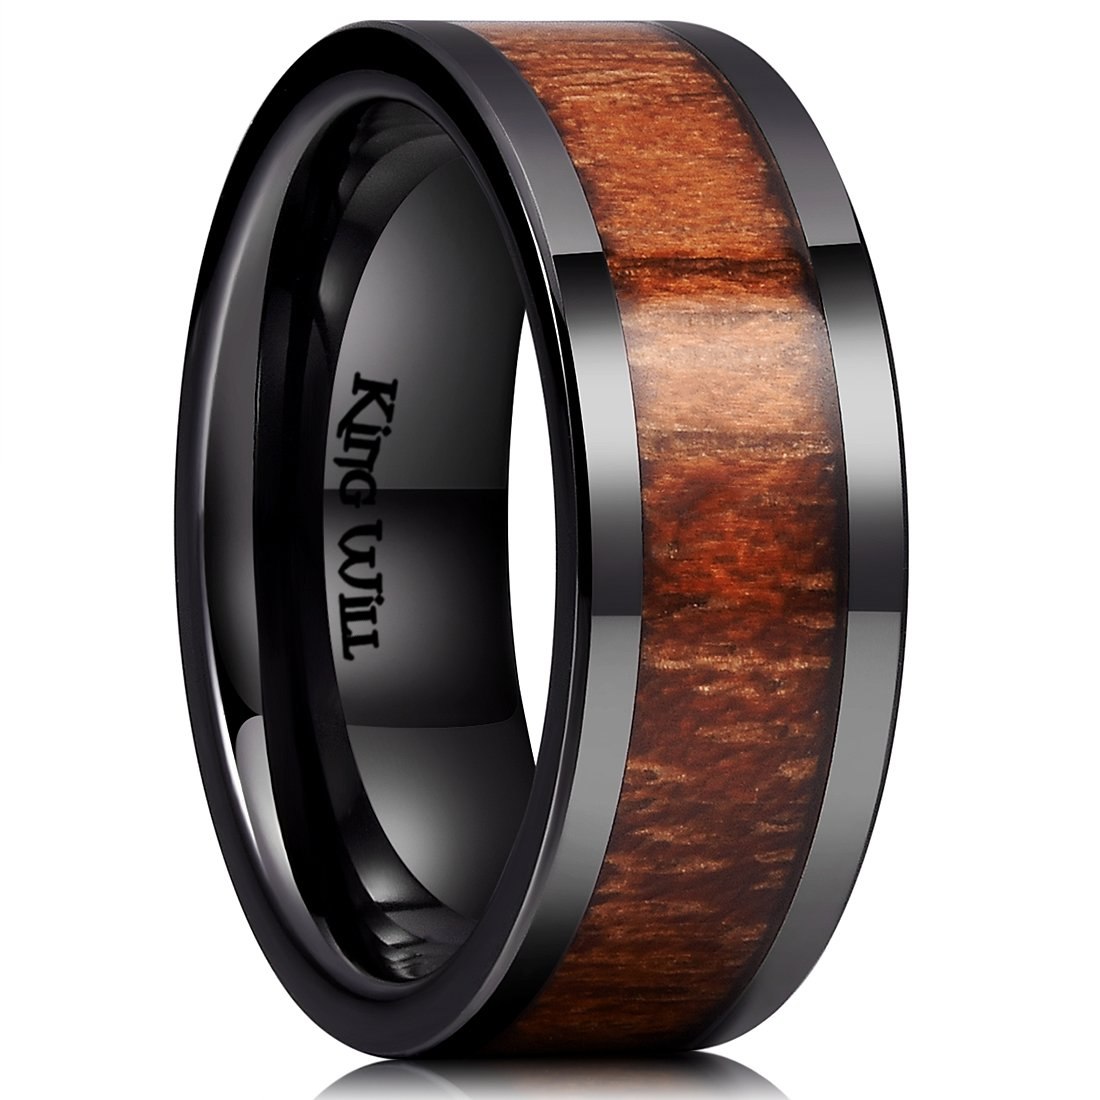 King Will Nature 8mm Black Koa Wood Ceramic Ring Wedding Band Polished Finish Comfort Fit10